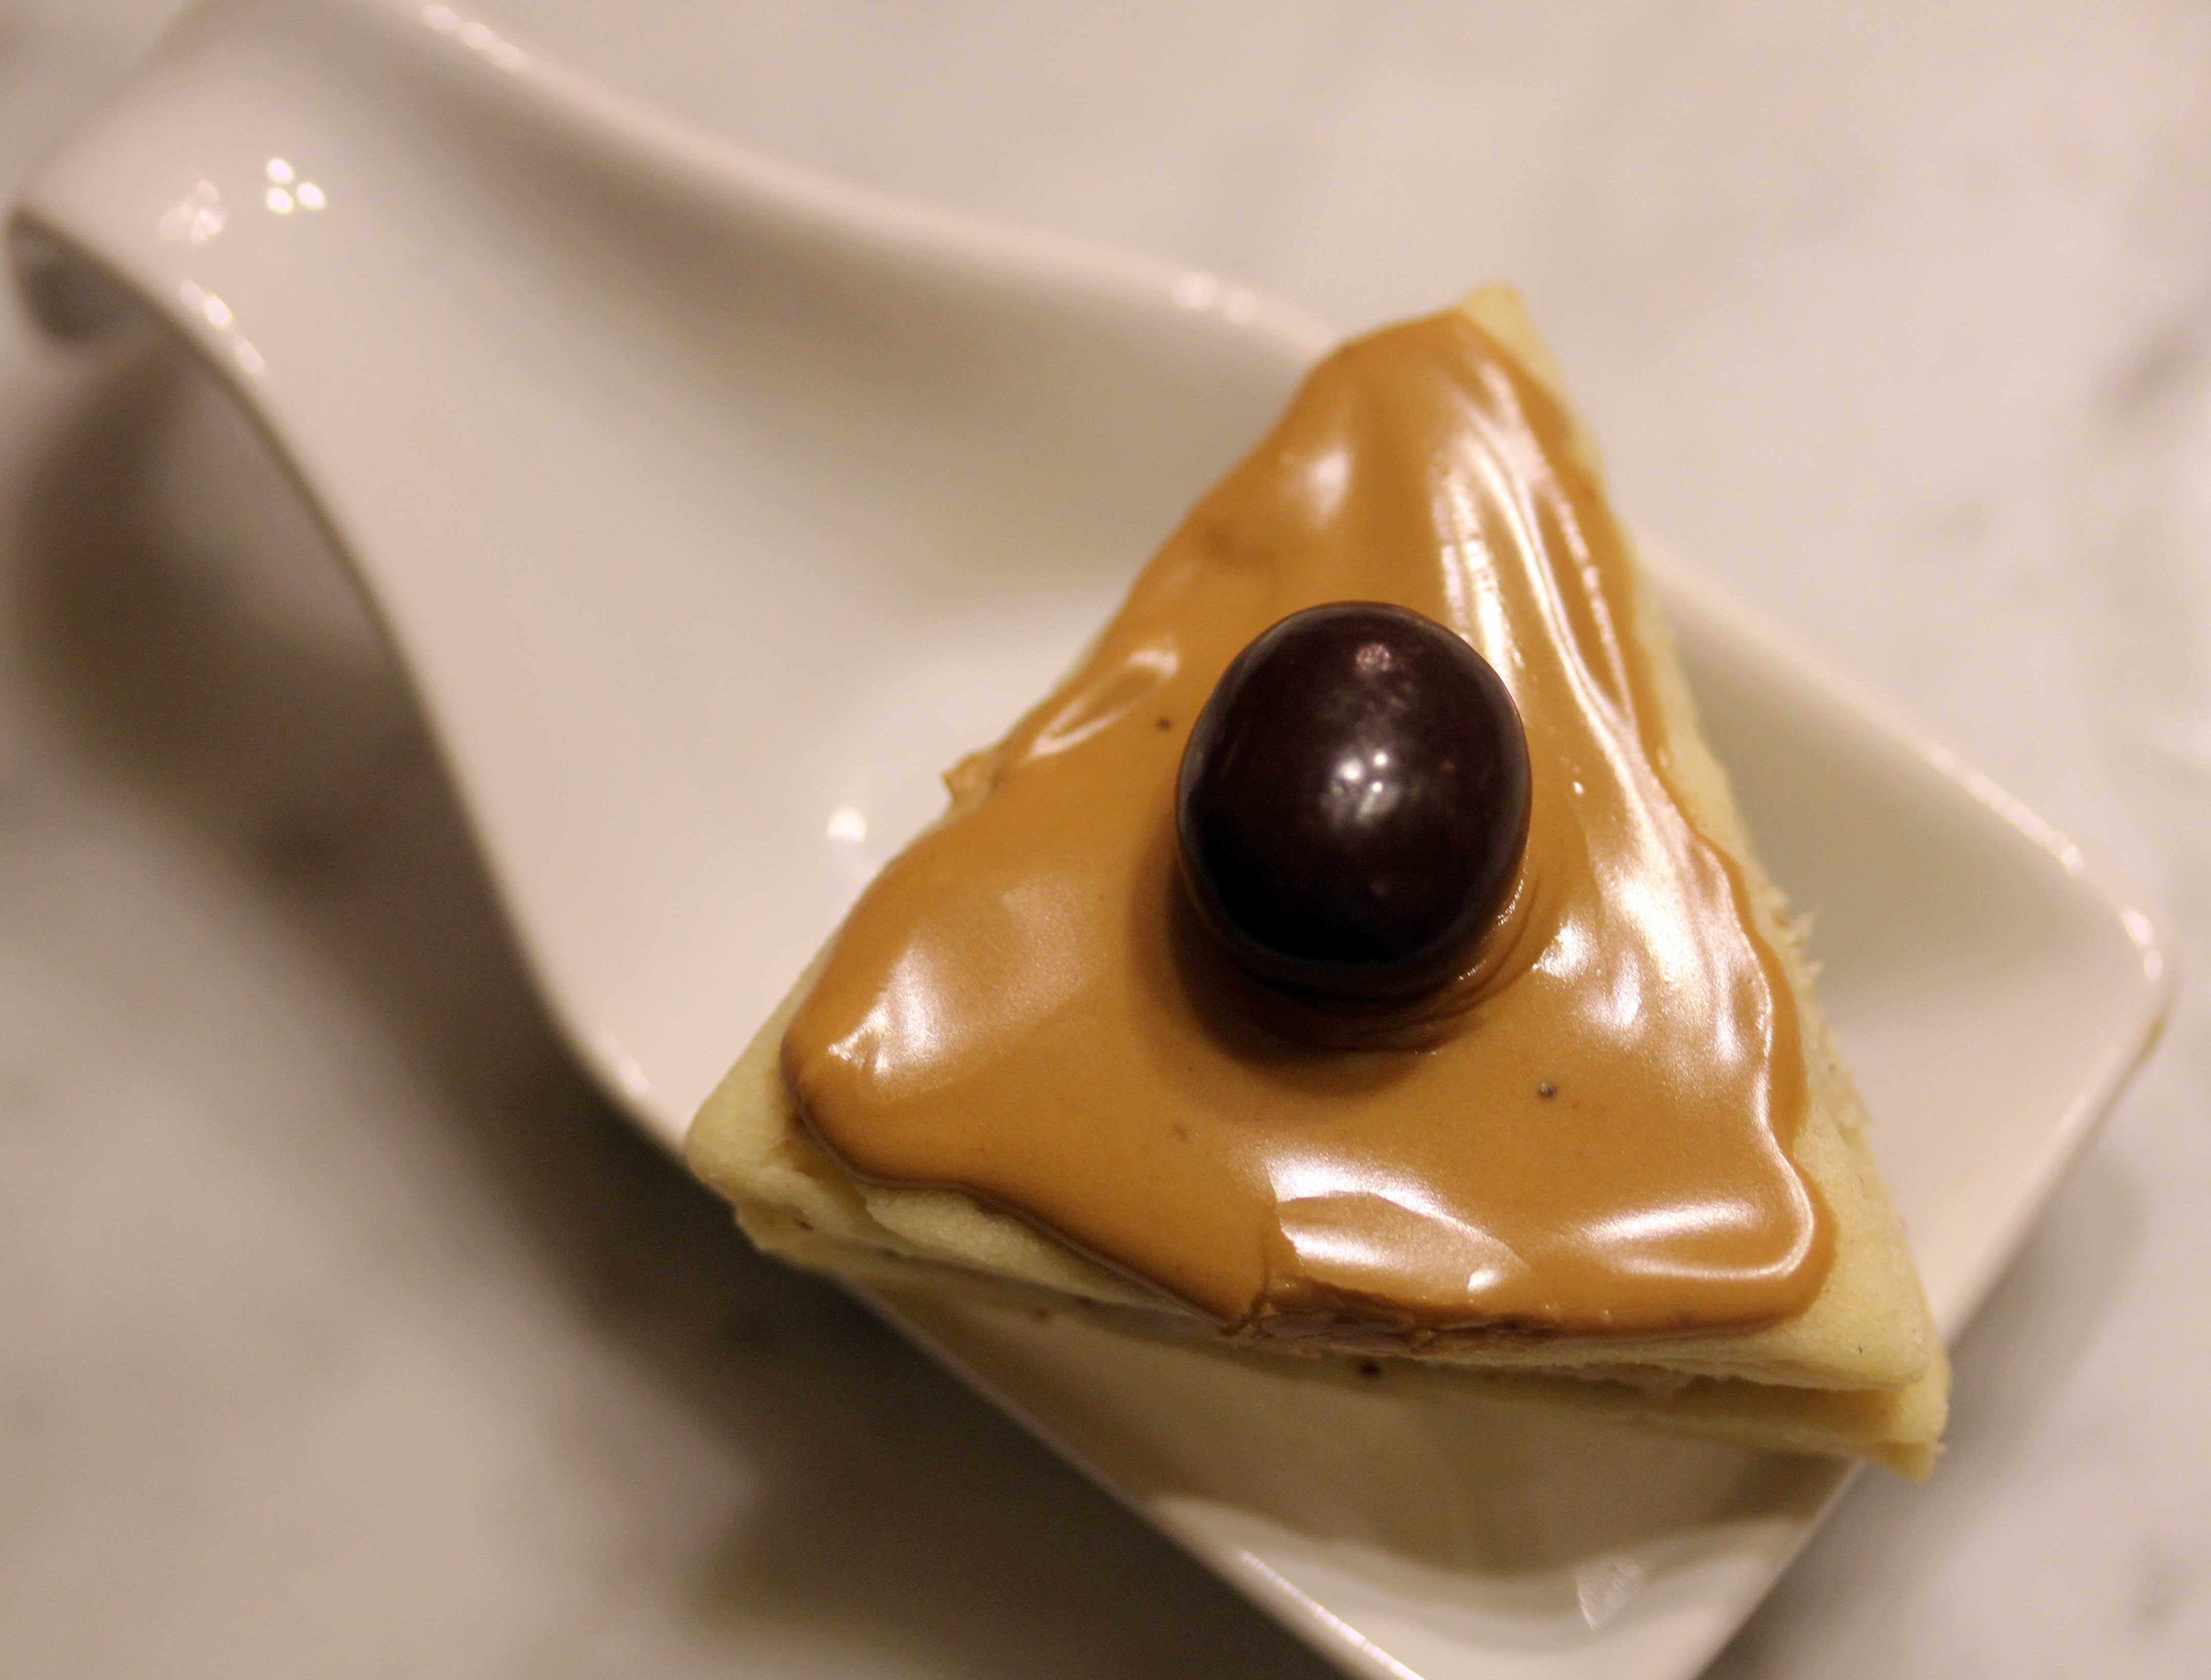 TBT and Christmas Cookies: Coffee Shots from European Cookies